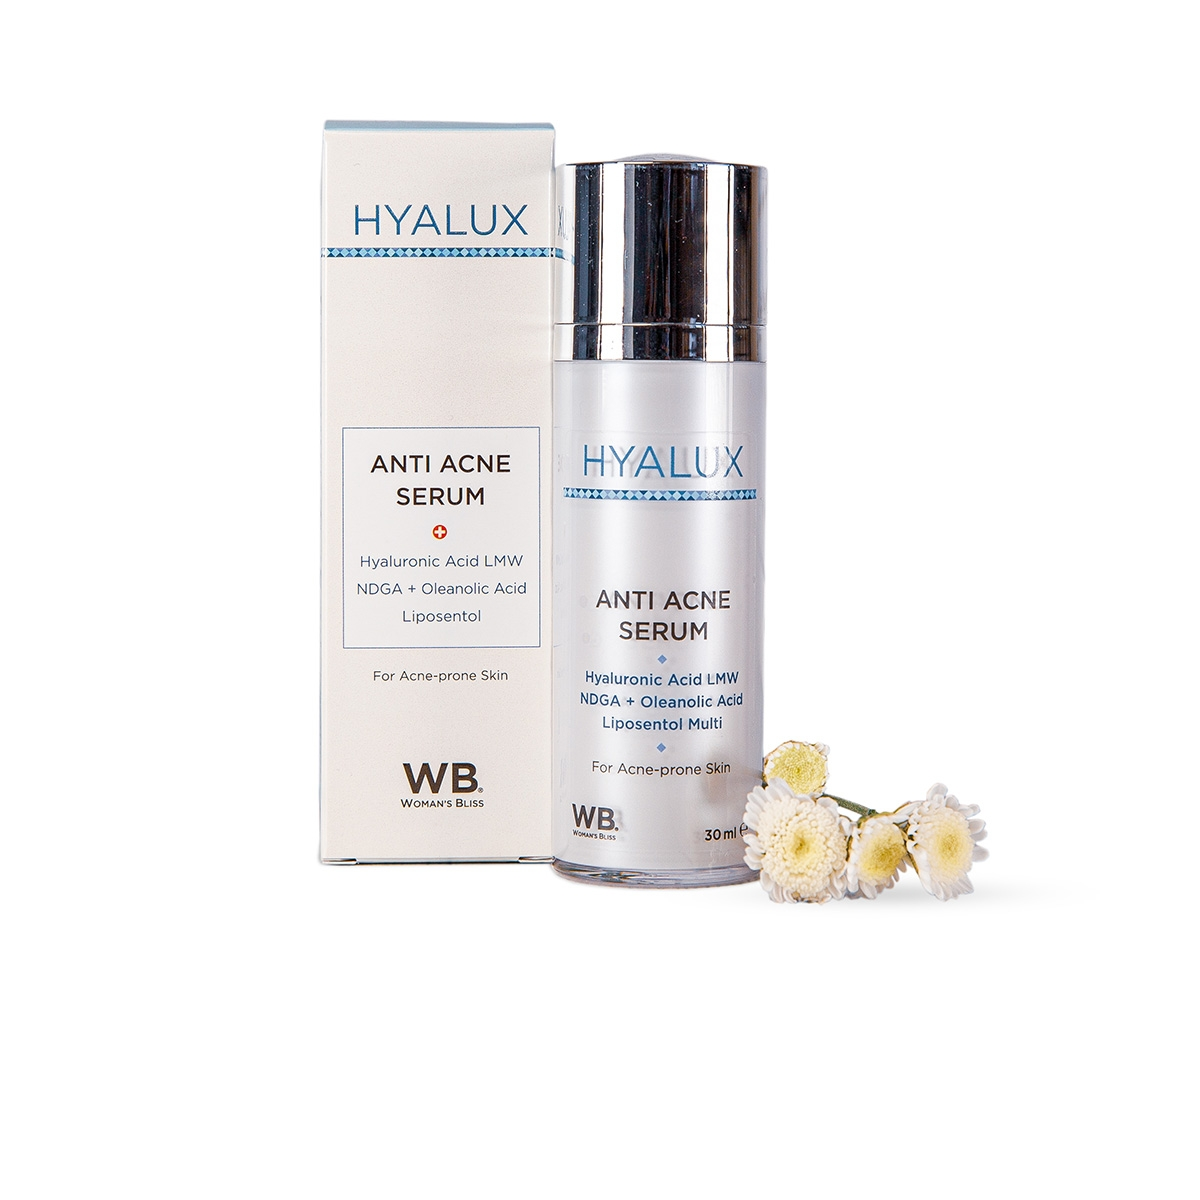 Сыворотка anti-acne HYALUX / Anti Acne Serum